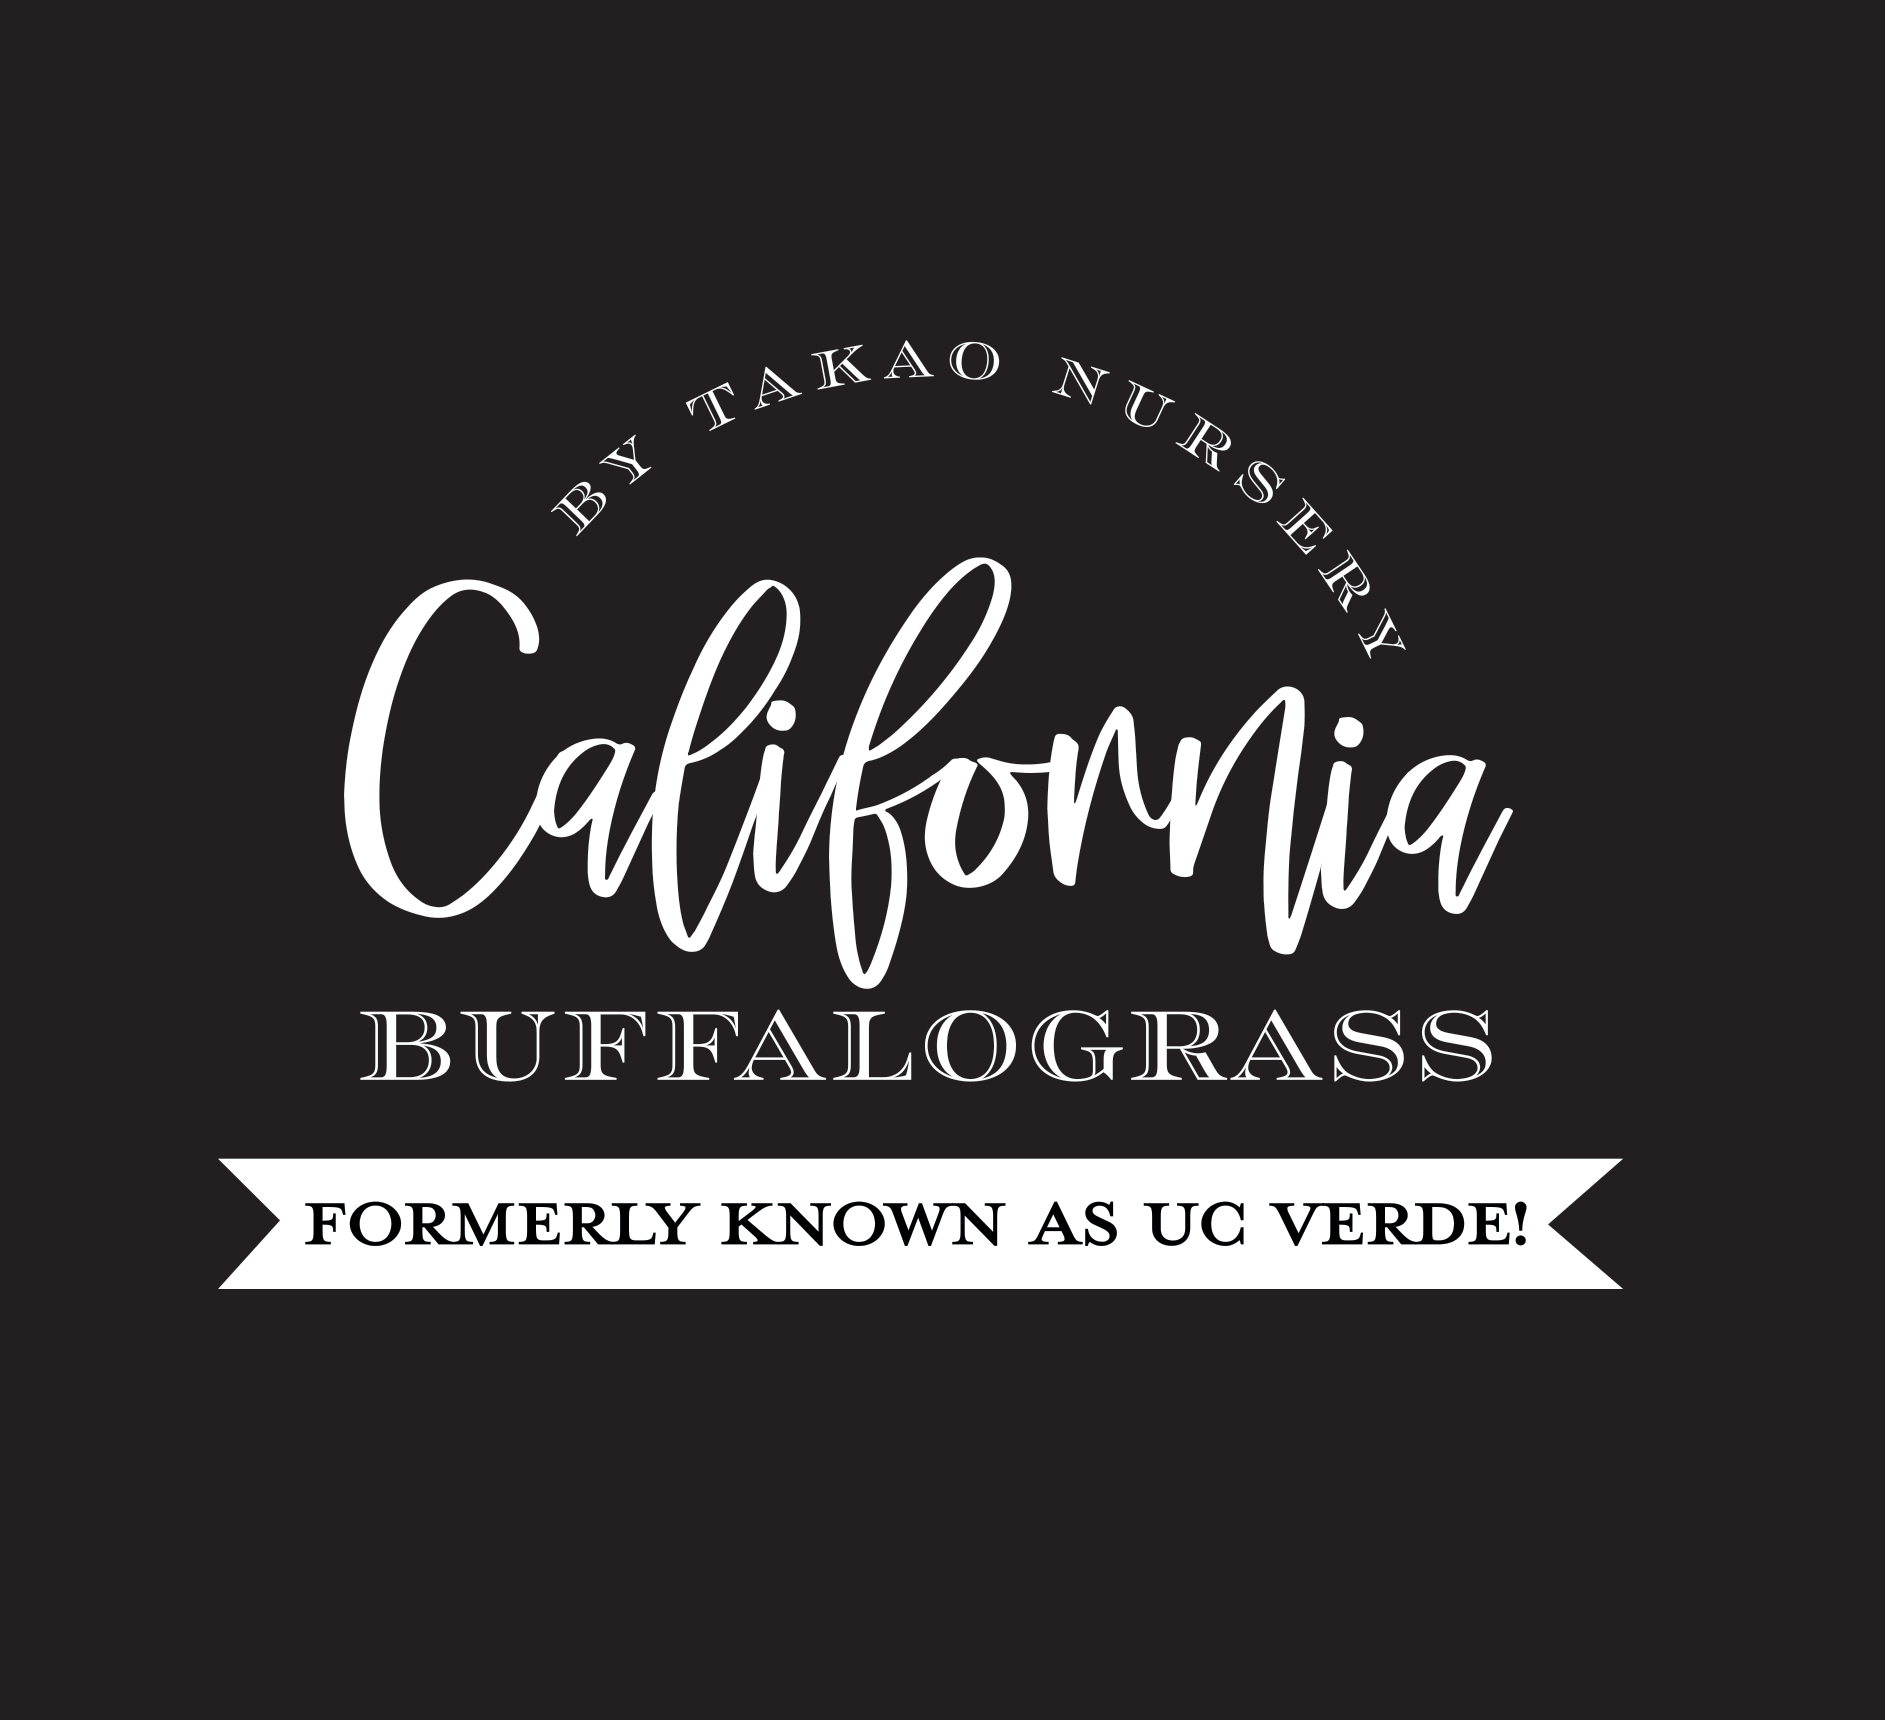 California Buffalograss, formerly UC Verde